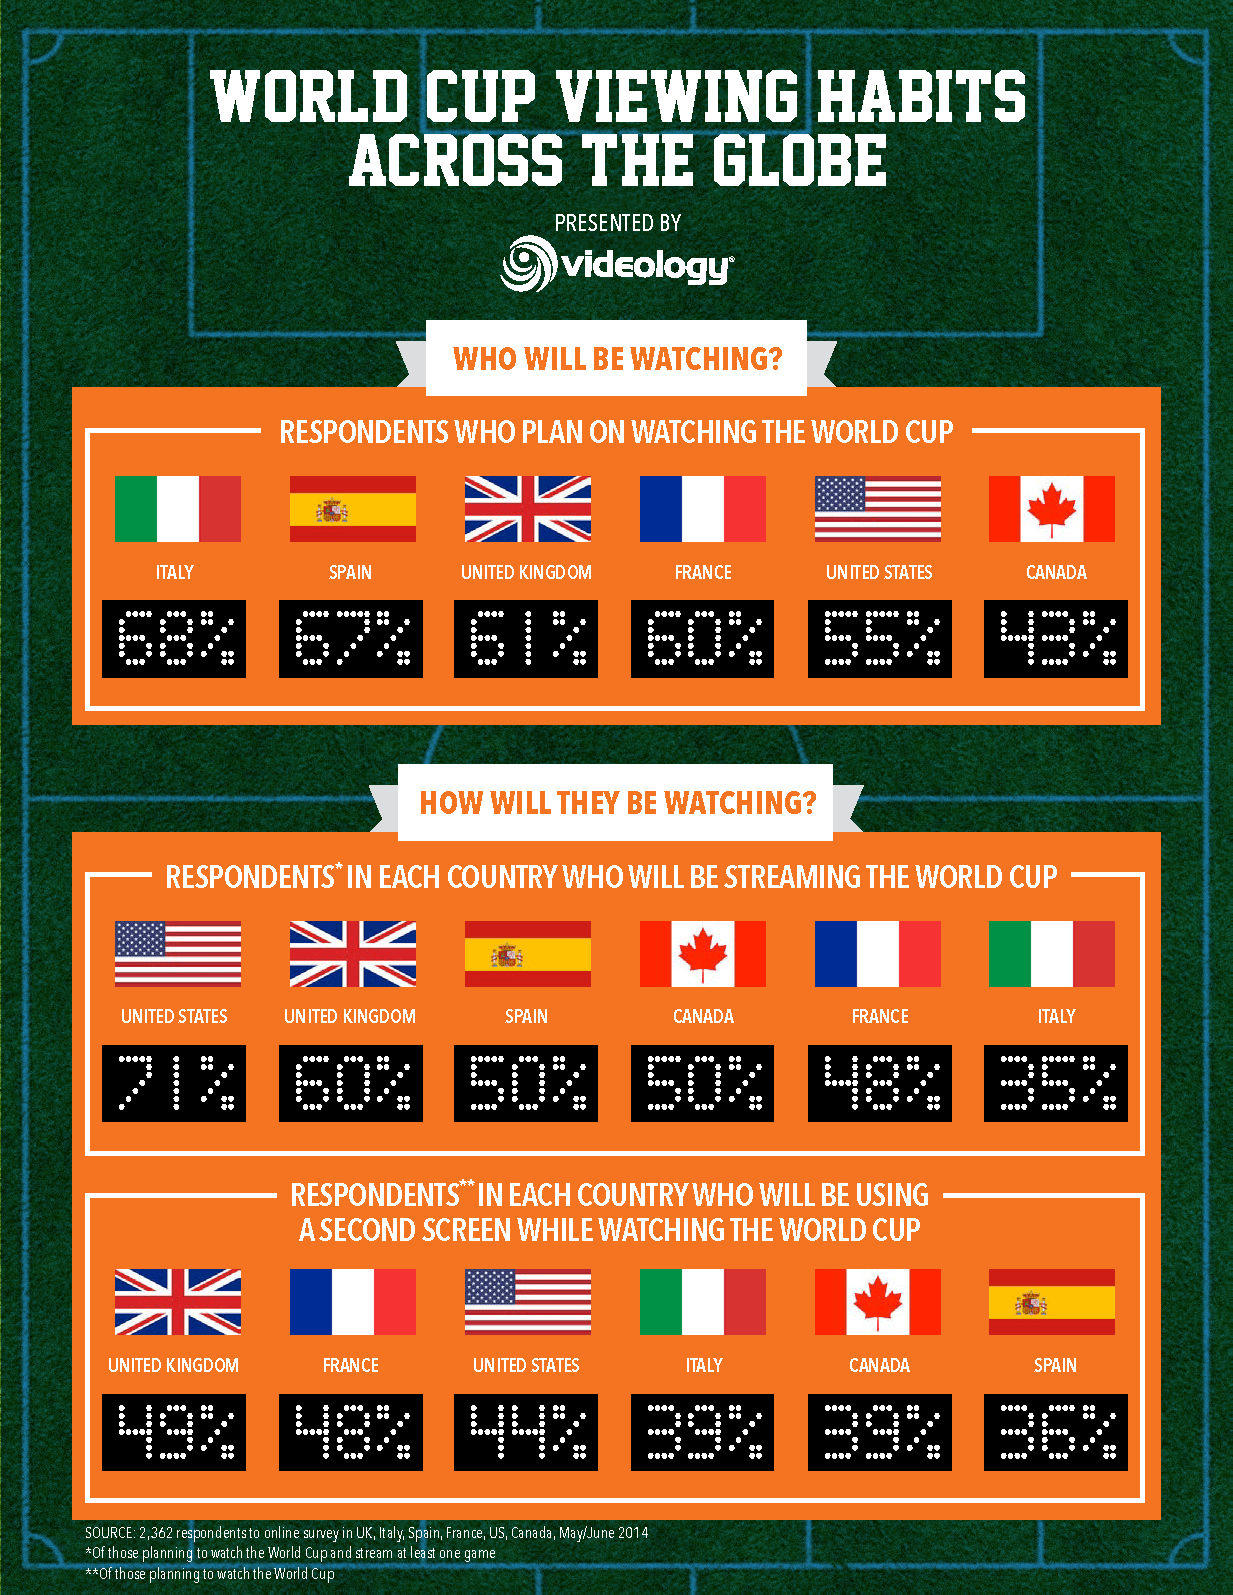 Videology_Global_World_Cup_Viewing_Infographic